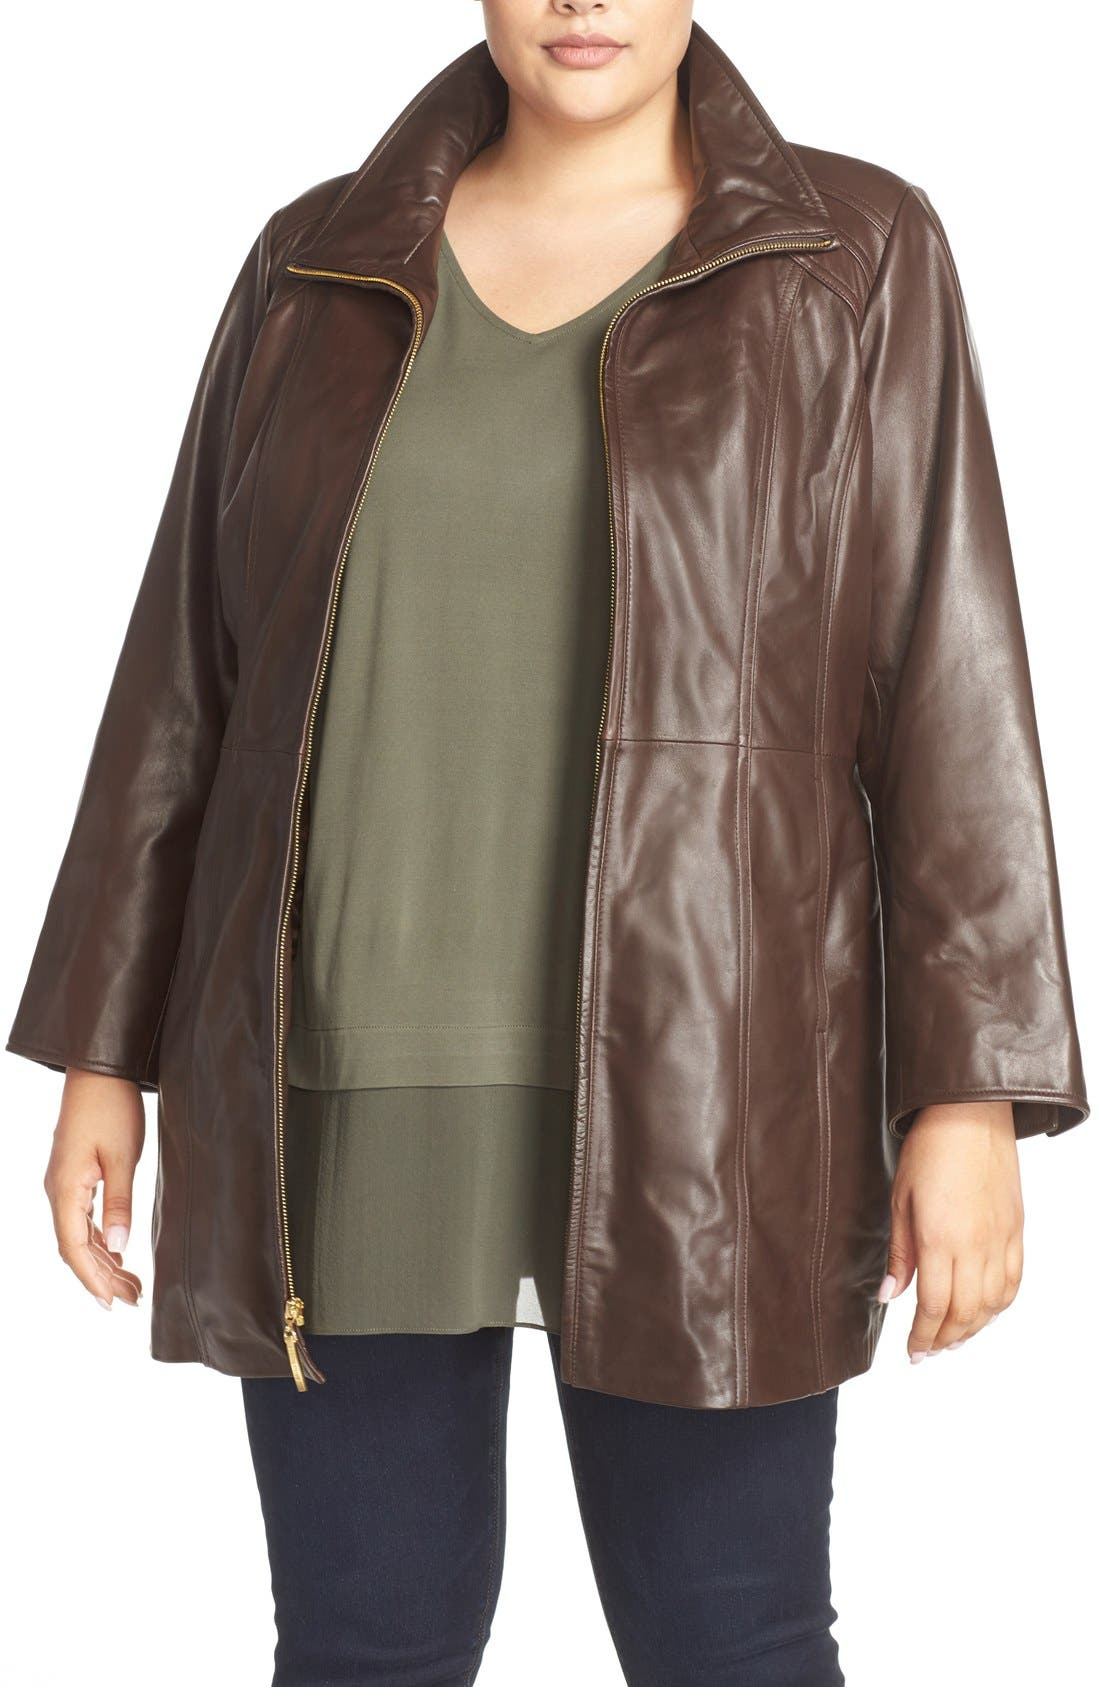 Alternate Image 1 Selected - Ellen Tracy Leather Walking Coat (Plus Size)